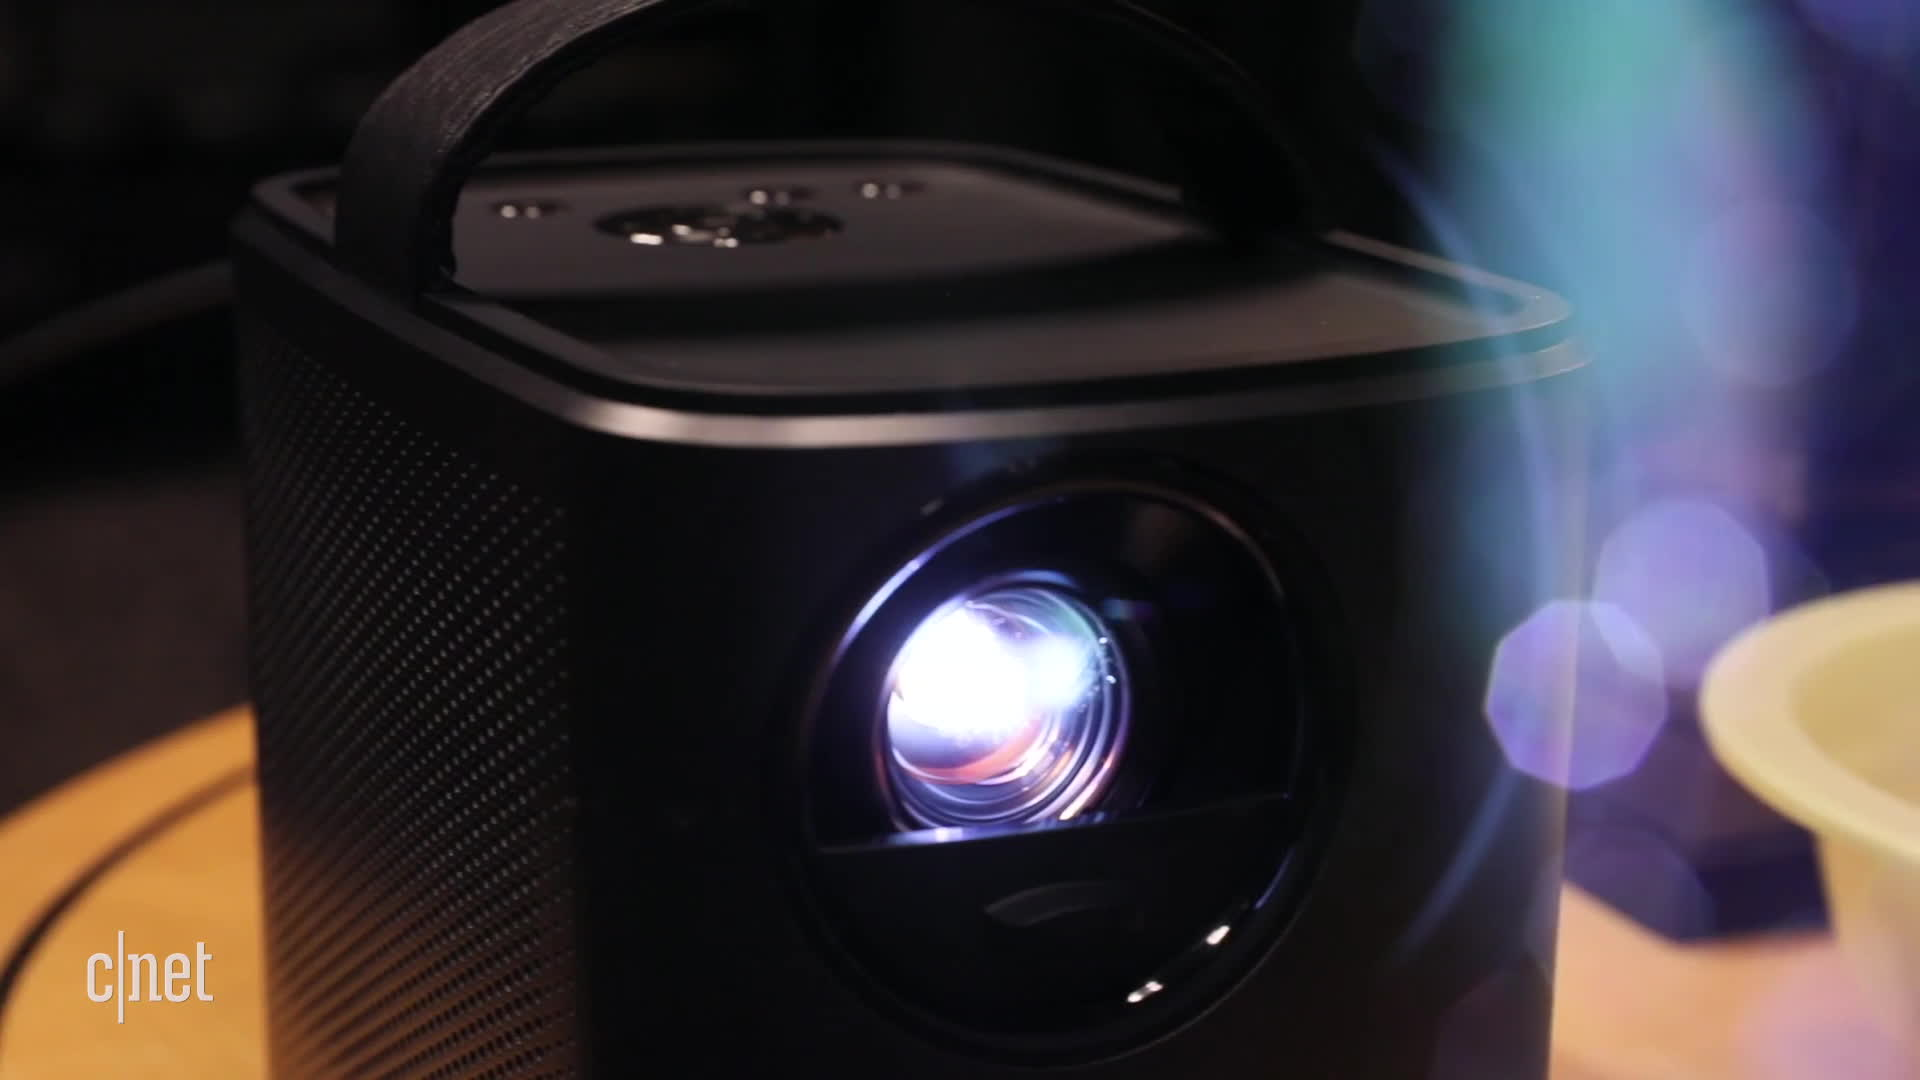 cnet first look, david carnoy, projectors, Nebula Mars is a home cinema in a lunch box GIFs